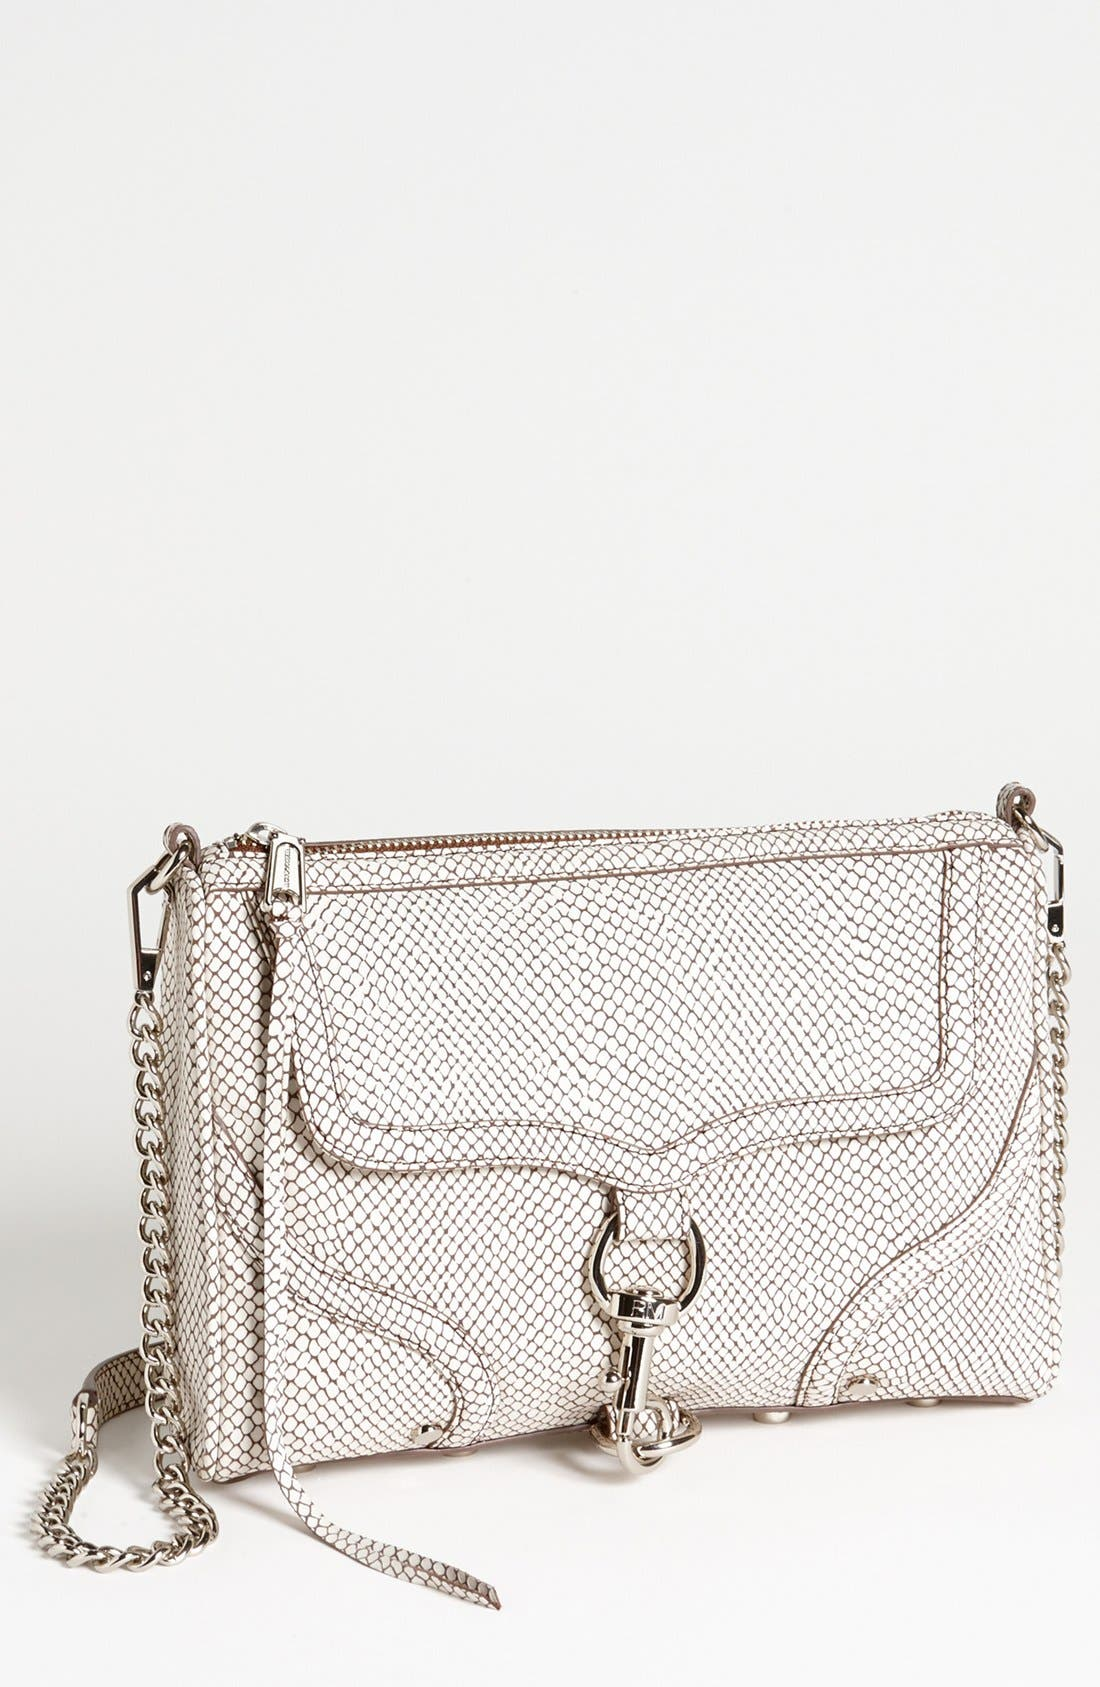 Alternate Image 1 Selected - Rebecca Minkoff 'MAC - Bombe' Clutch